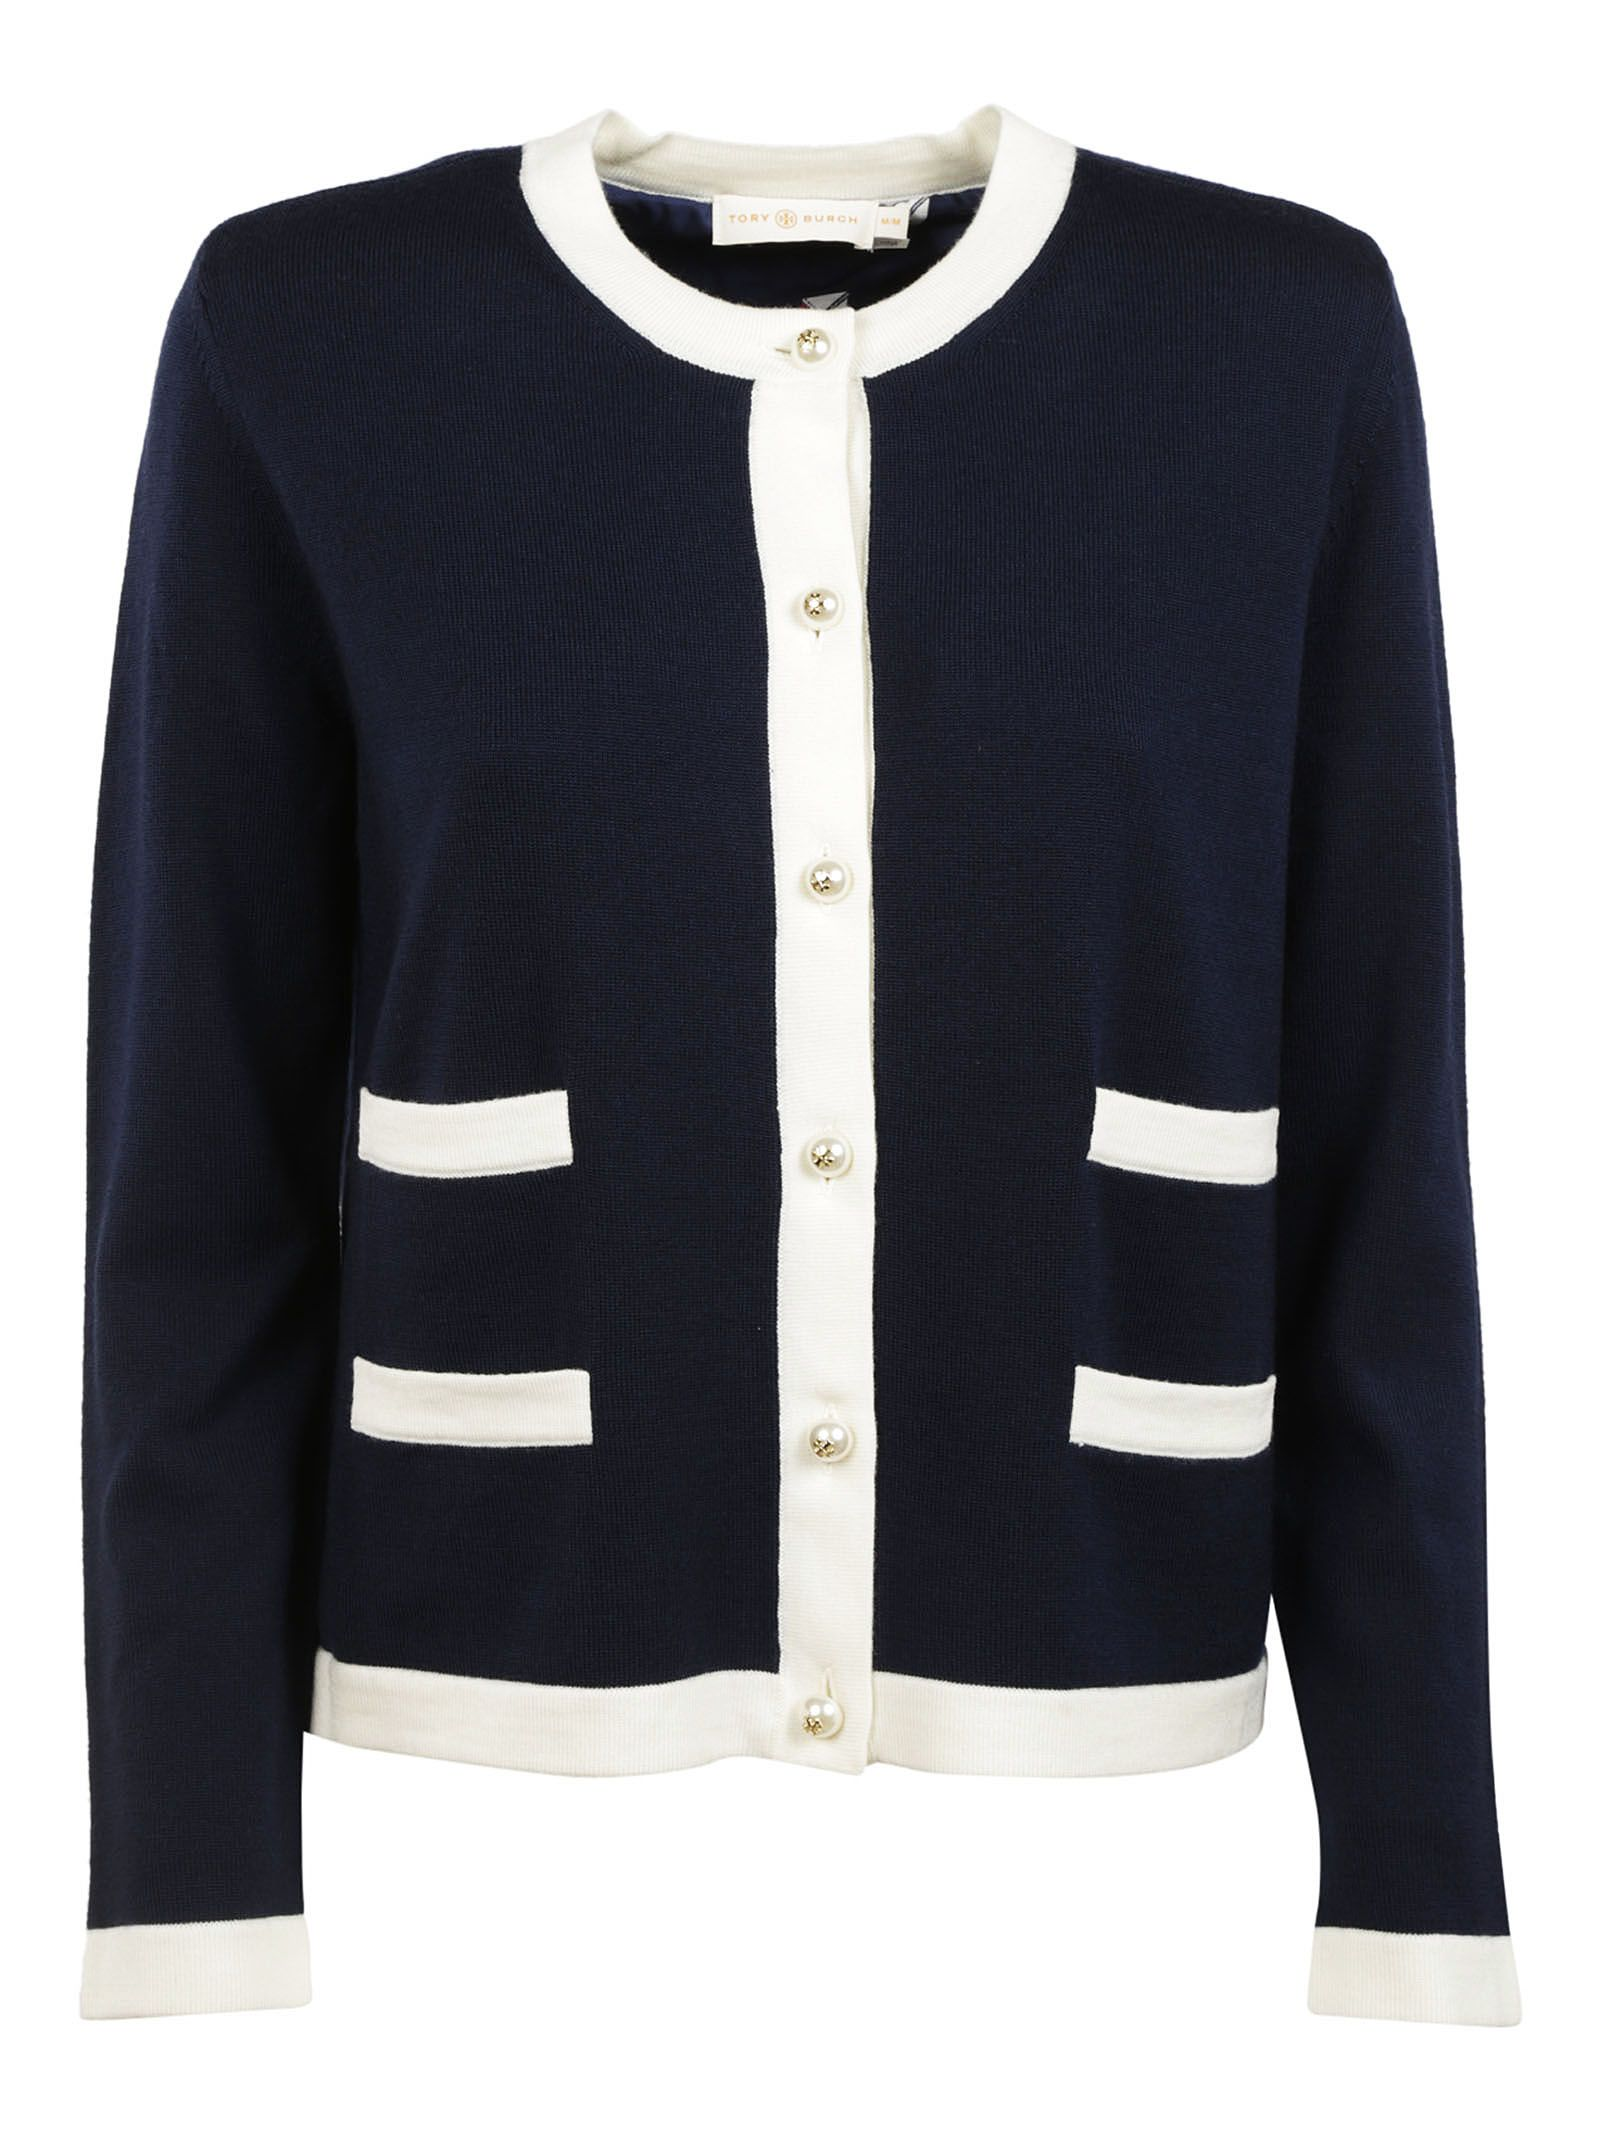 Tory Burch - Tory Burch Contrast Trim Cardigan - Navy, Women's ...